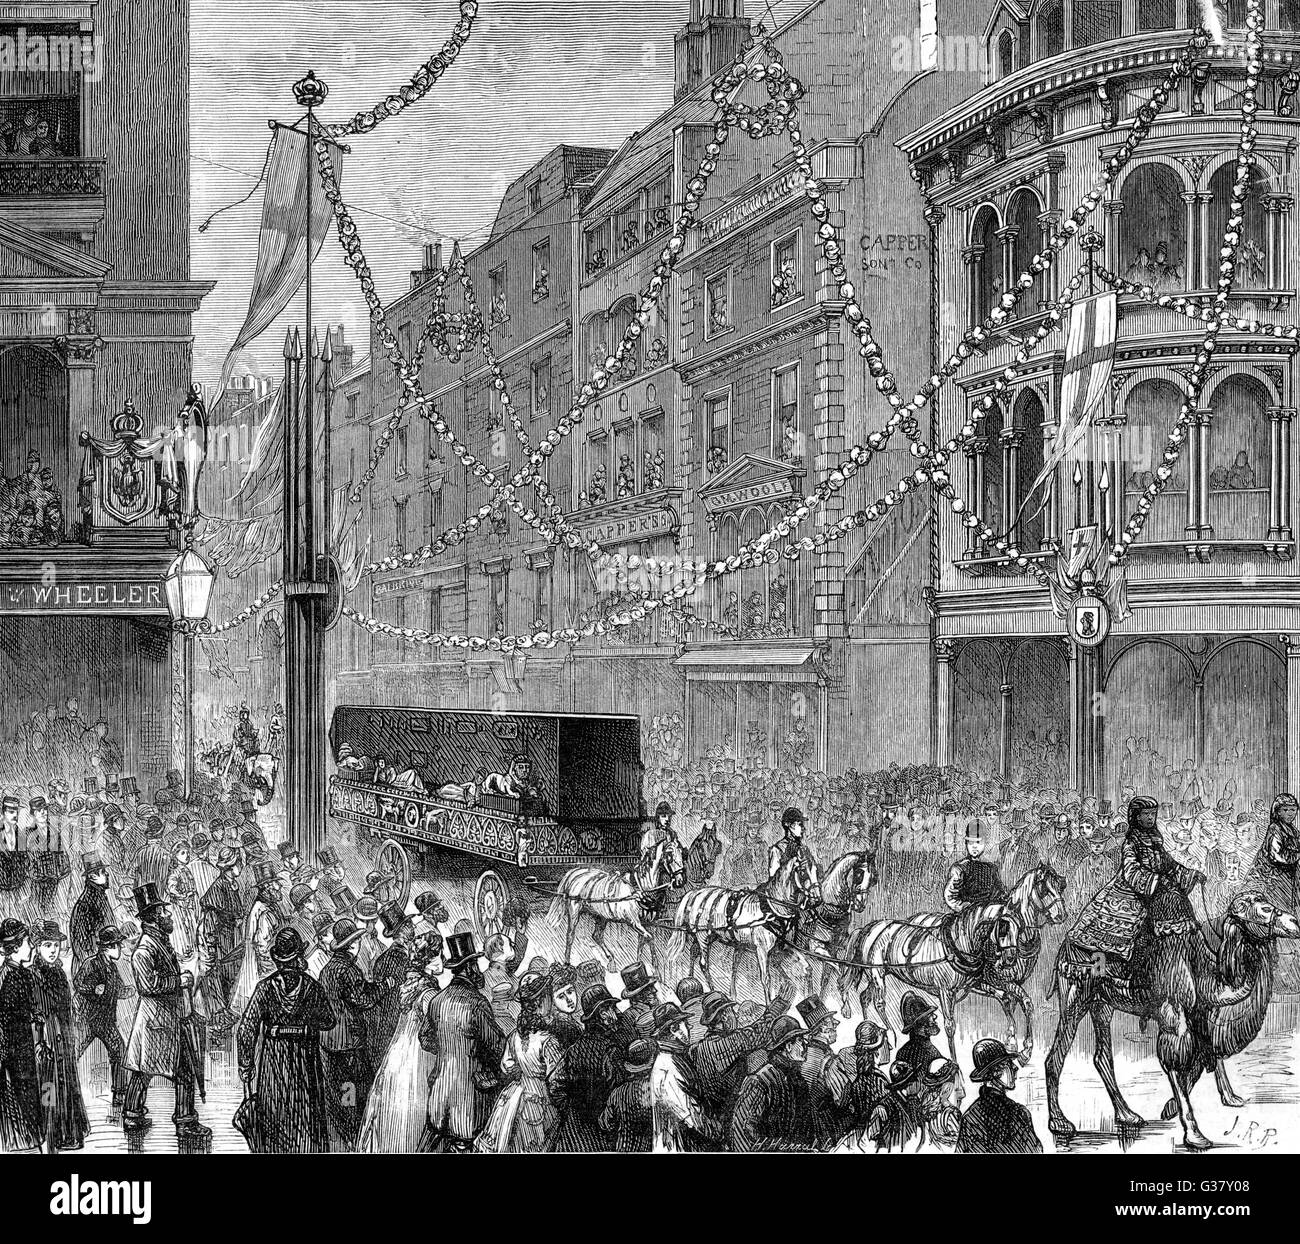 The procession, on Lord Mayor's Day, with Cleopatra's Needle passing down Gracechurch Street, London.   - Stock Image